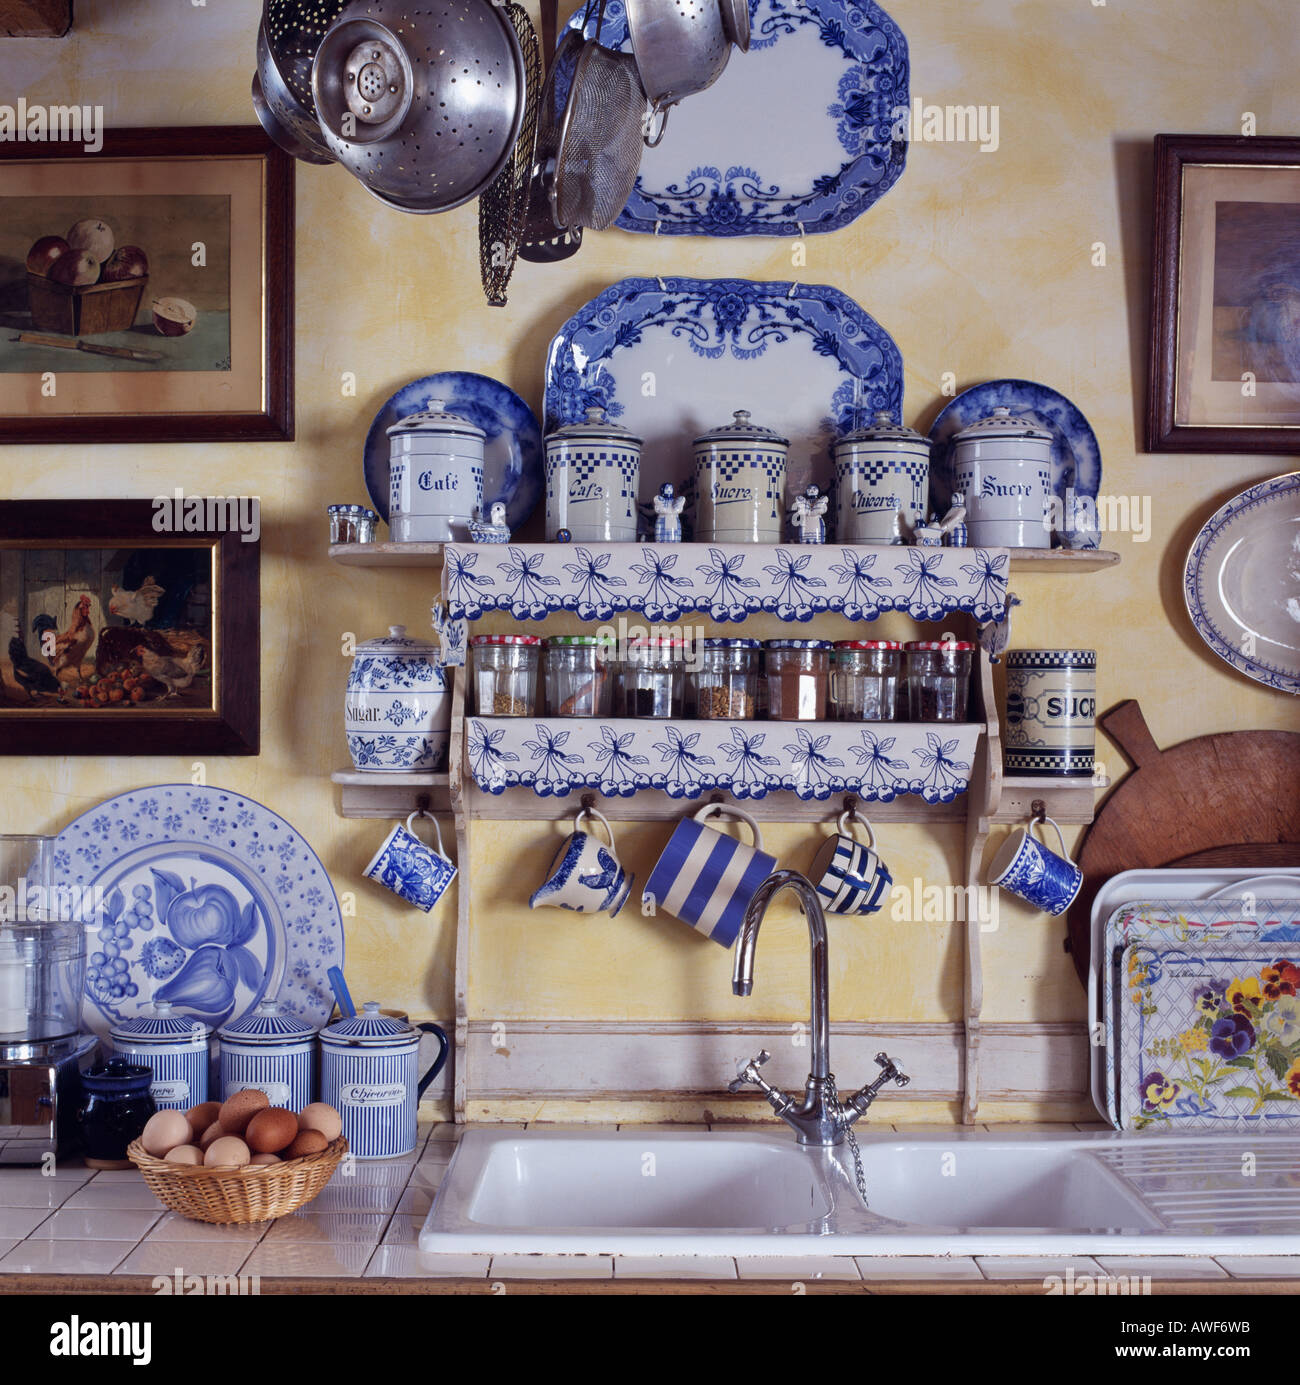 Small Decorative Plates Close Up Of Blue White Plates And Cups On Small Shelves With Stock